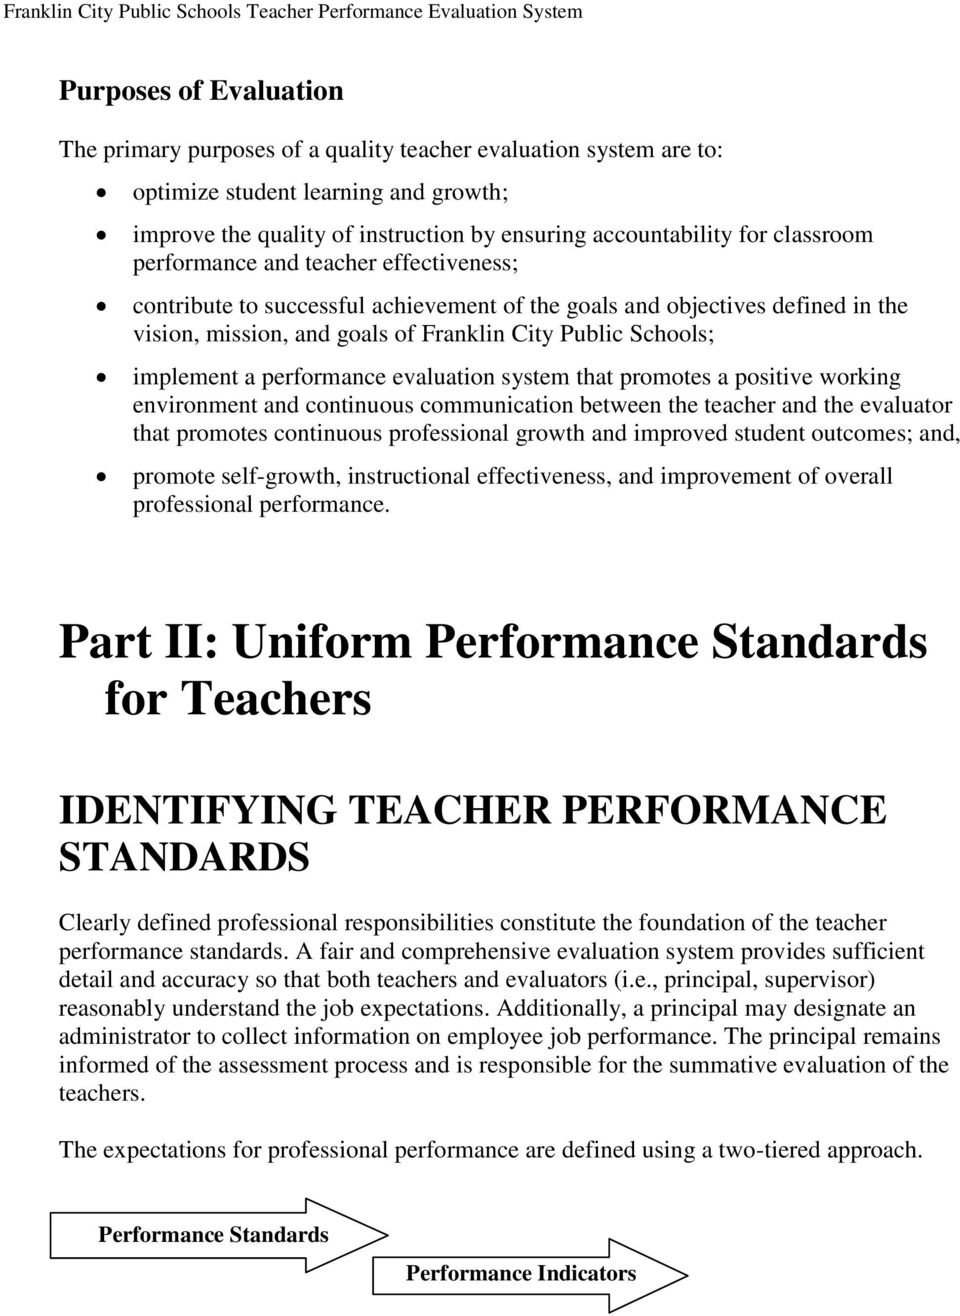 a performance evaluation system that promotes a positive working environment and continuous communication between the teacher and the evaluator that promotes continuous professional growth and